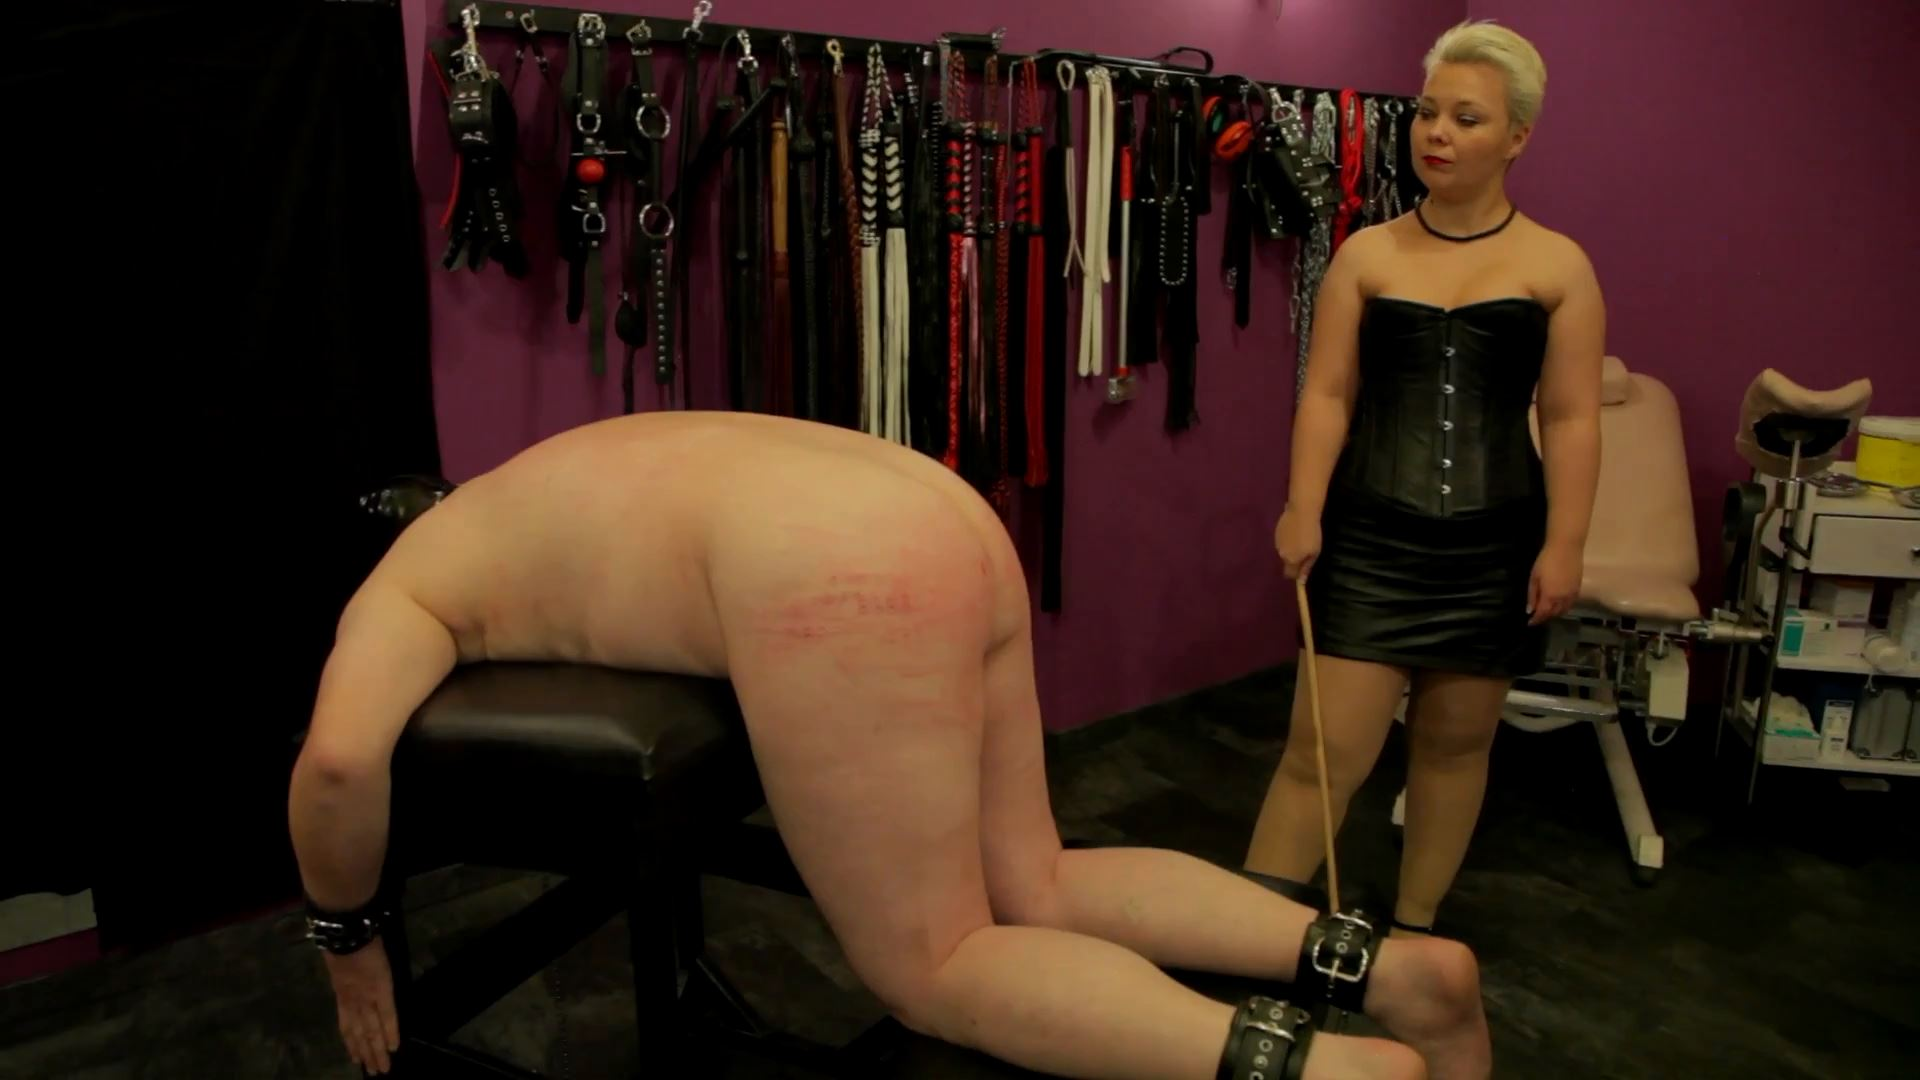 Lady Susan In Scene: With cane and carpet knocker - ERONITE-FEMDOM - FULL HD/1080p/MP4